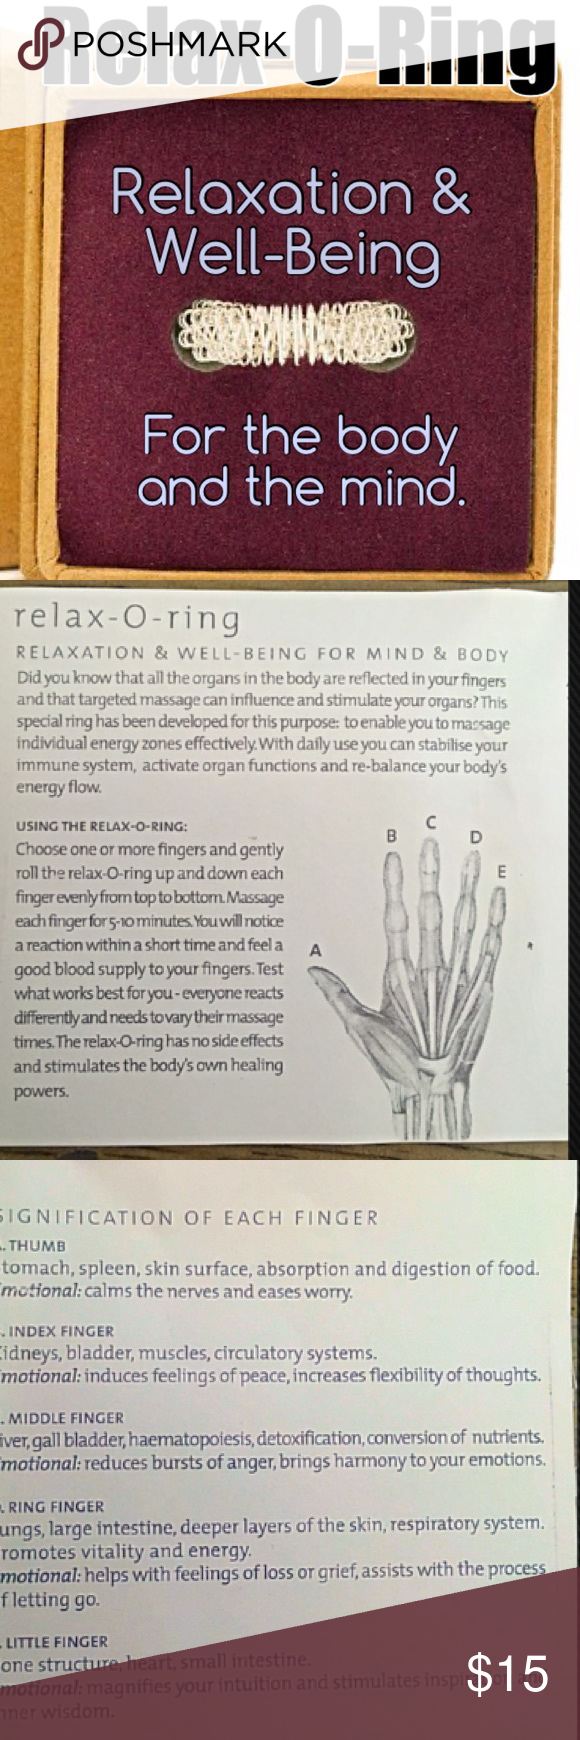 relaxation o-ring